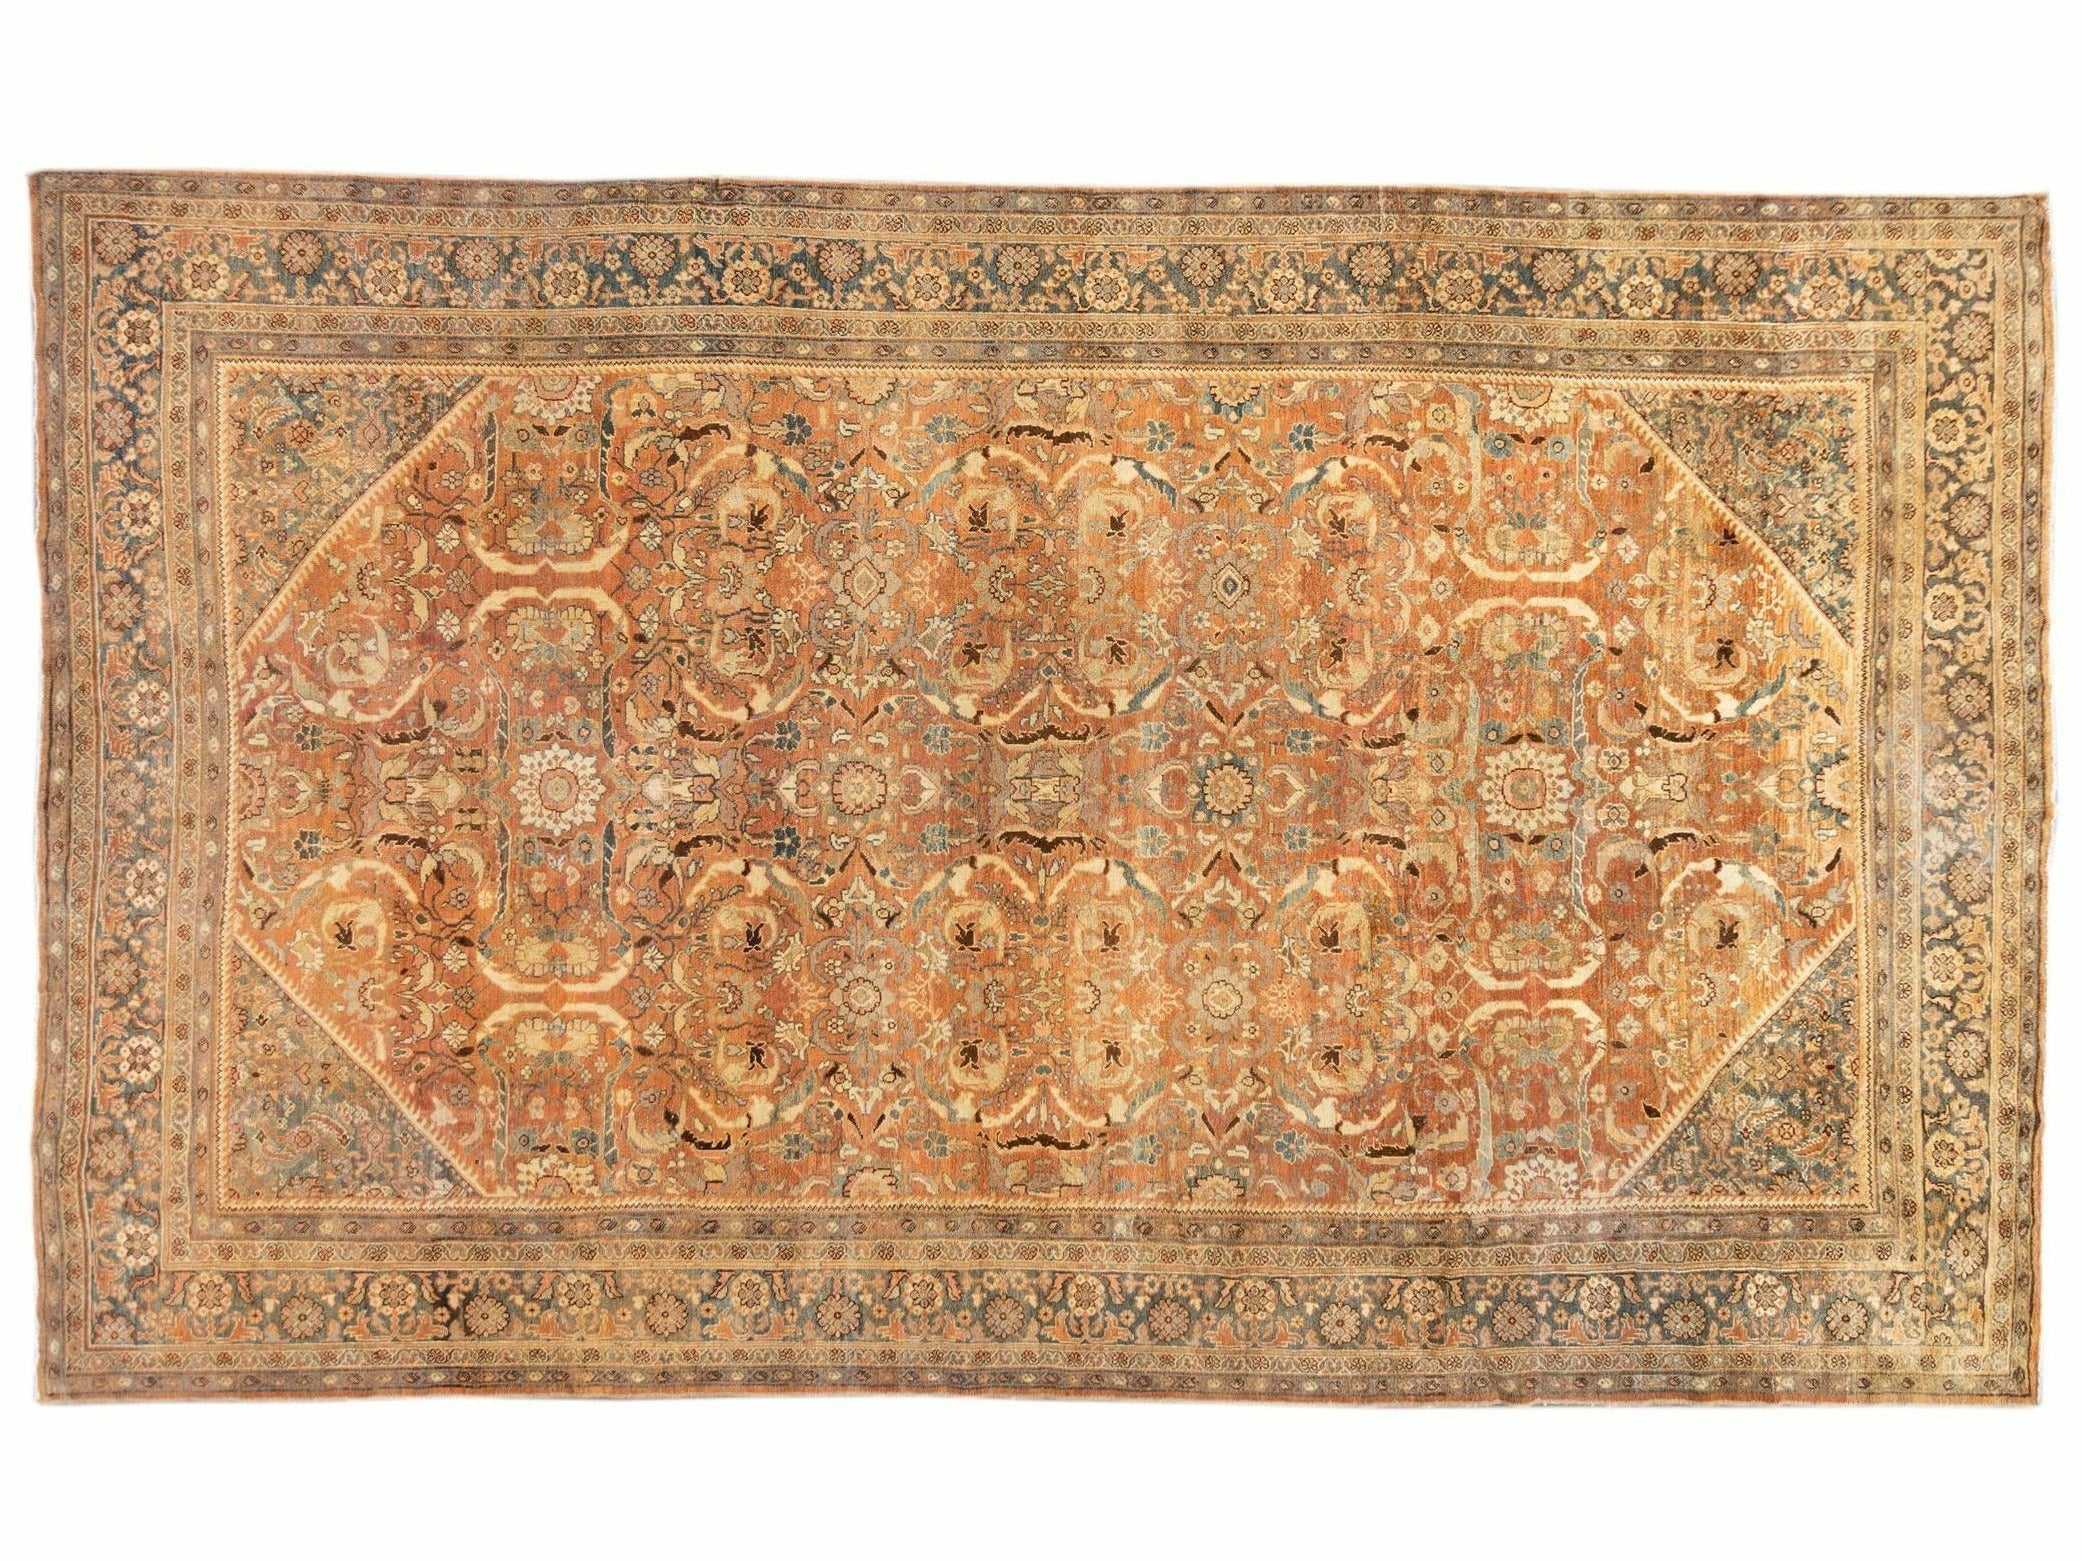 19th Century Antique Mahal Rug 11 X 19